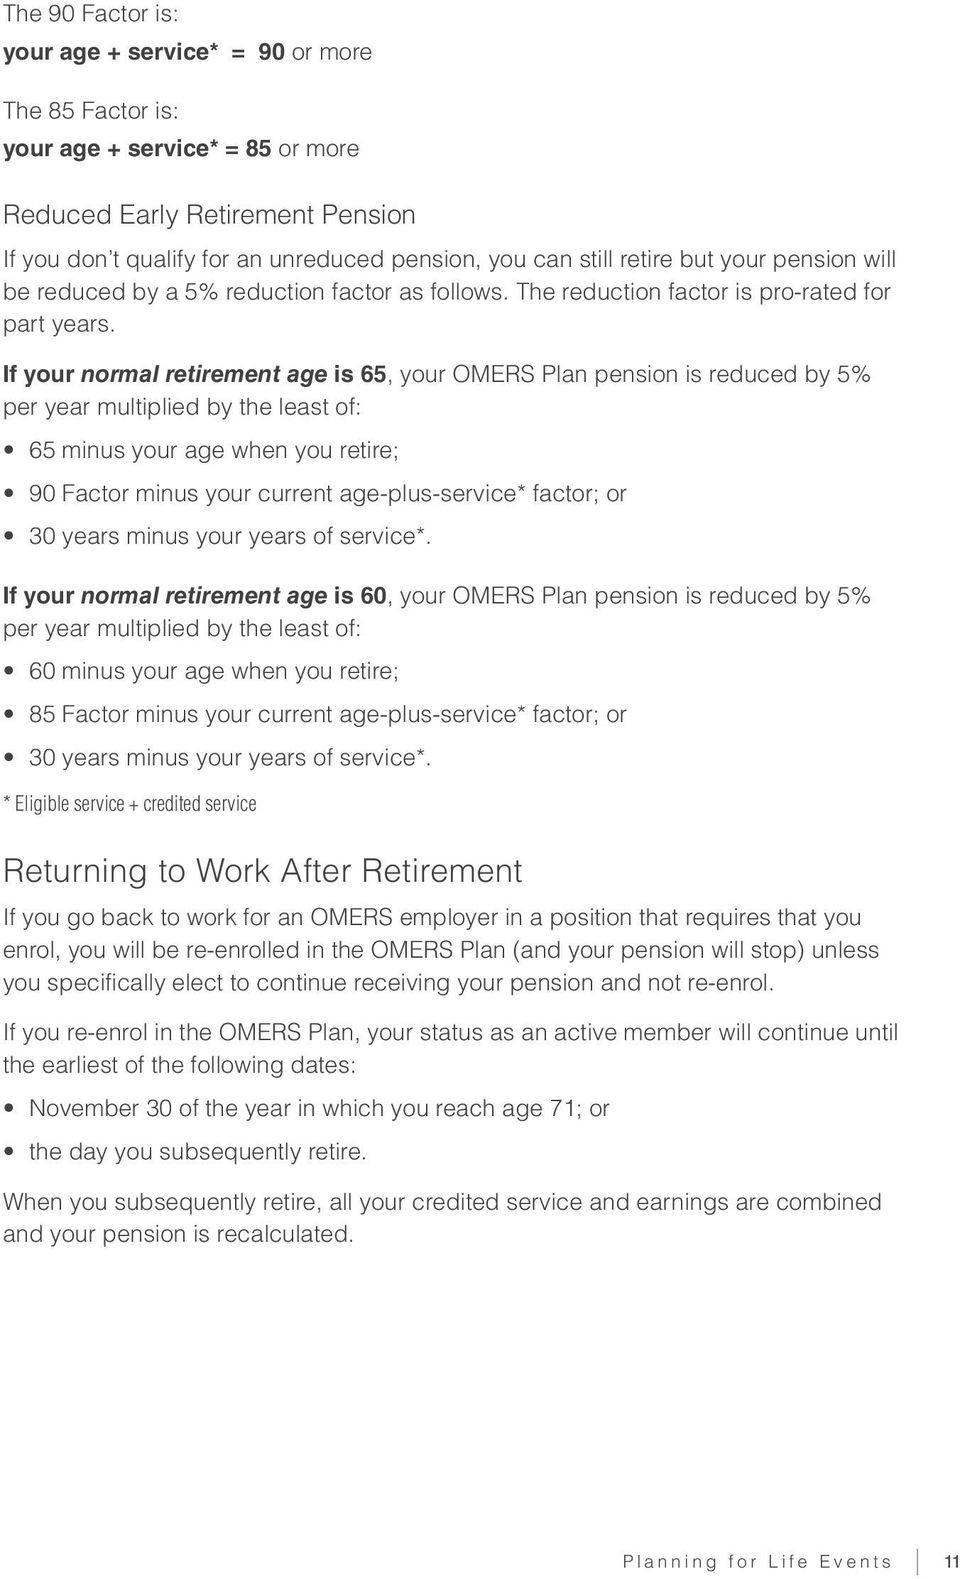 If your normal retirement age is 65, your OMERS Plan pension is reduced by 5% per year multiplied by the least of: 65 minus your age when you retire; 90 Factor minus your current age-plus-service*